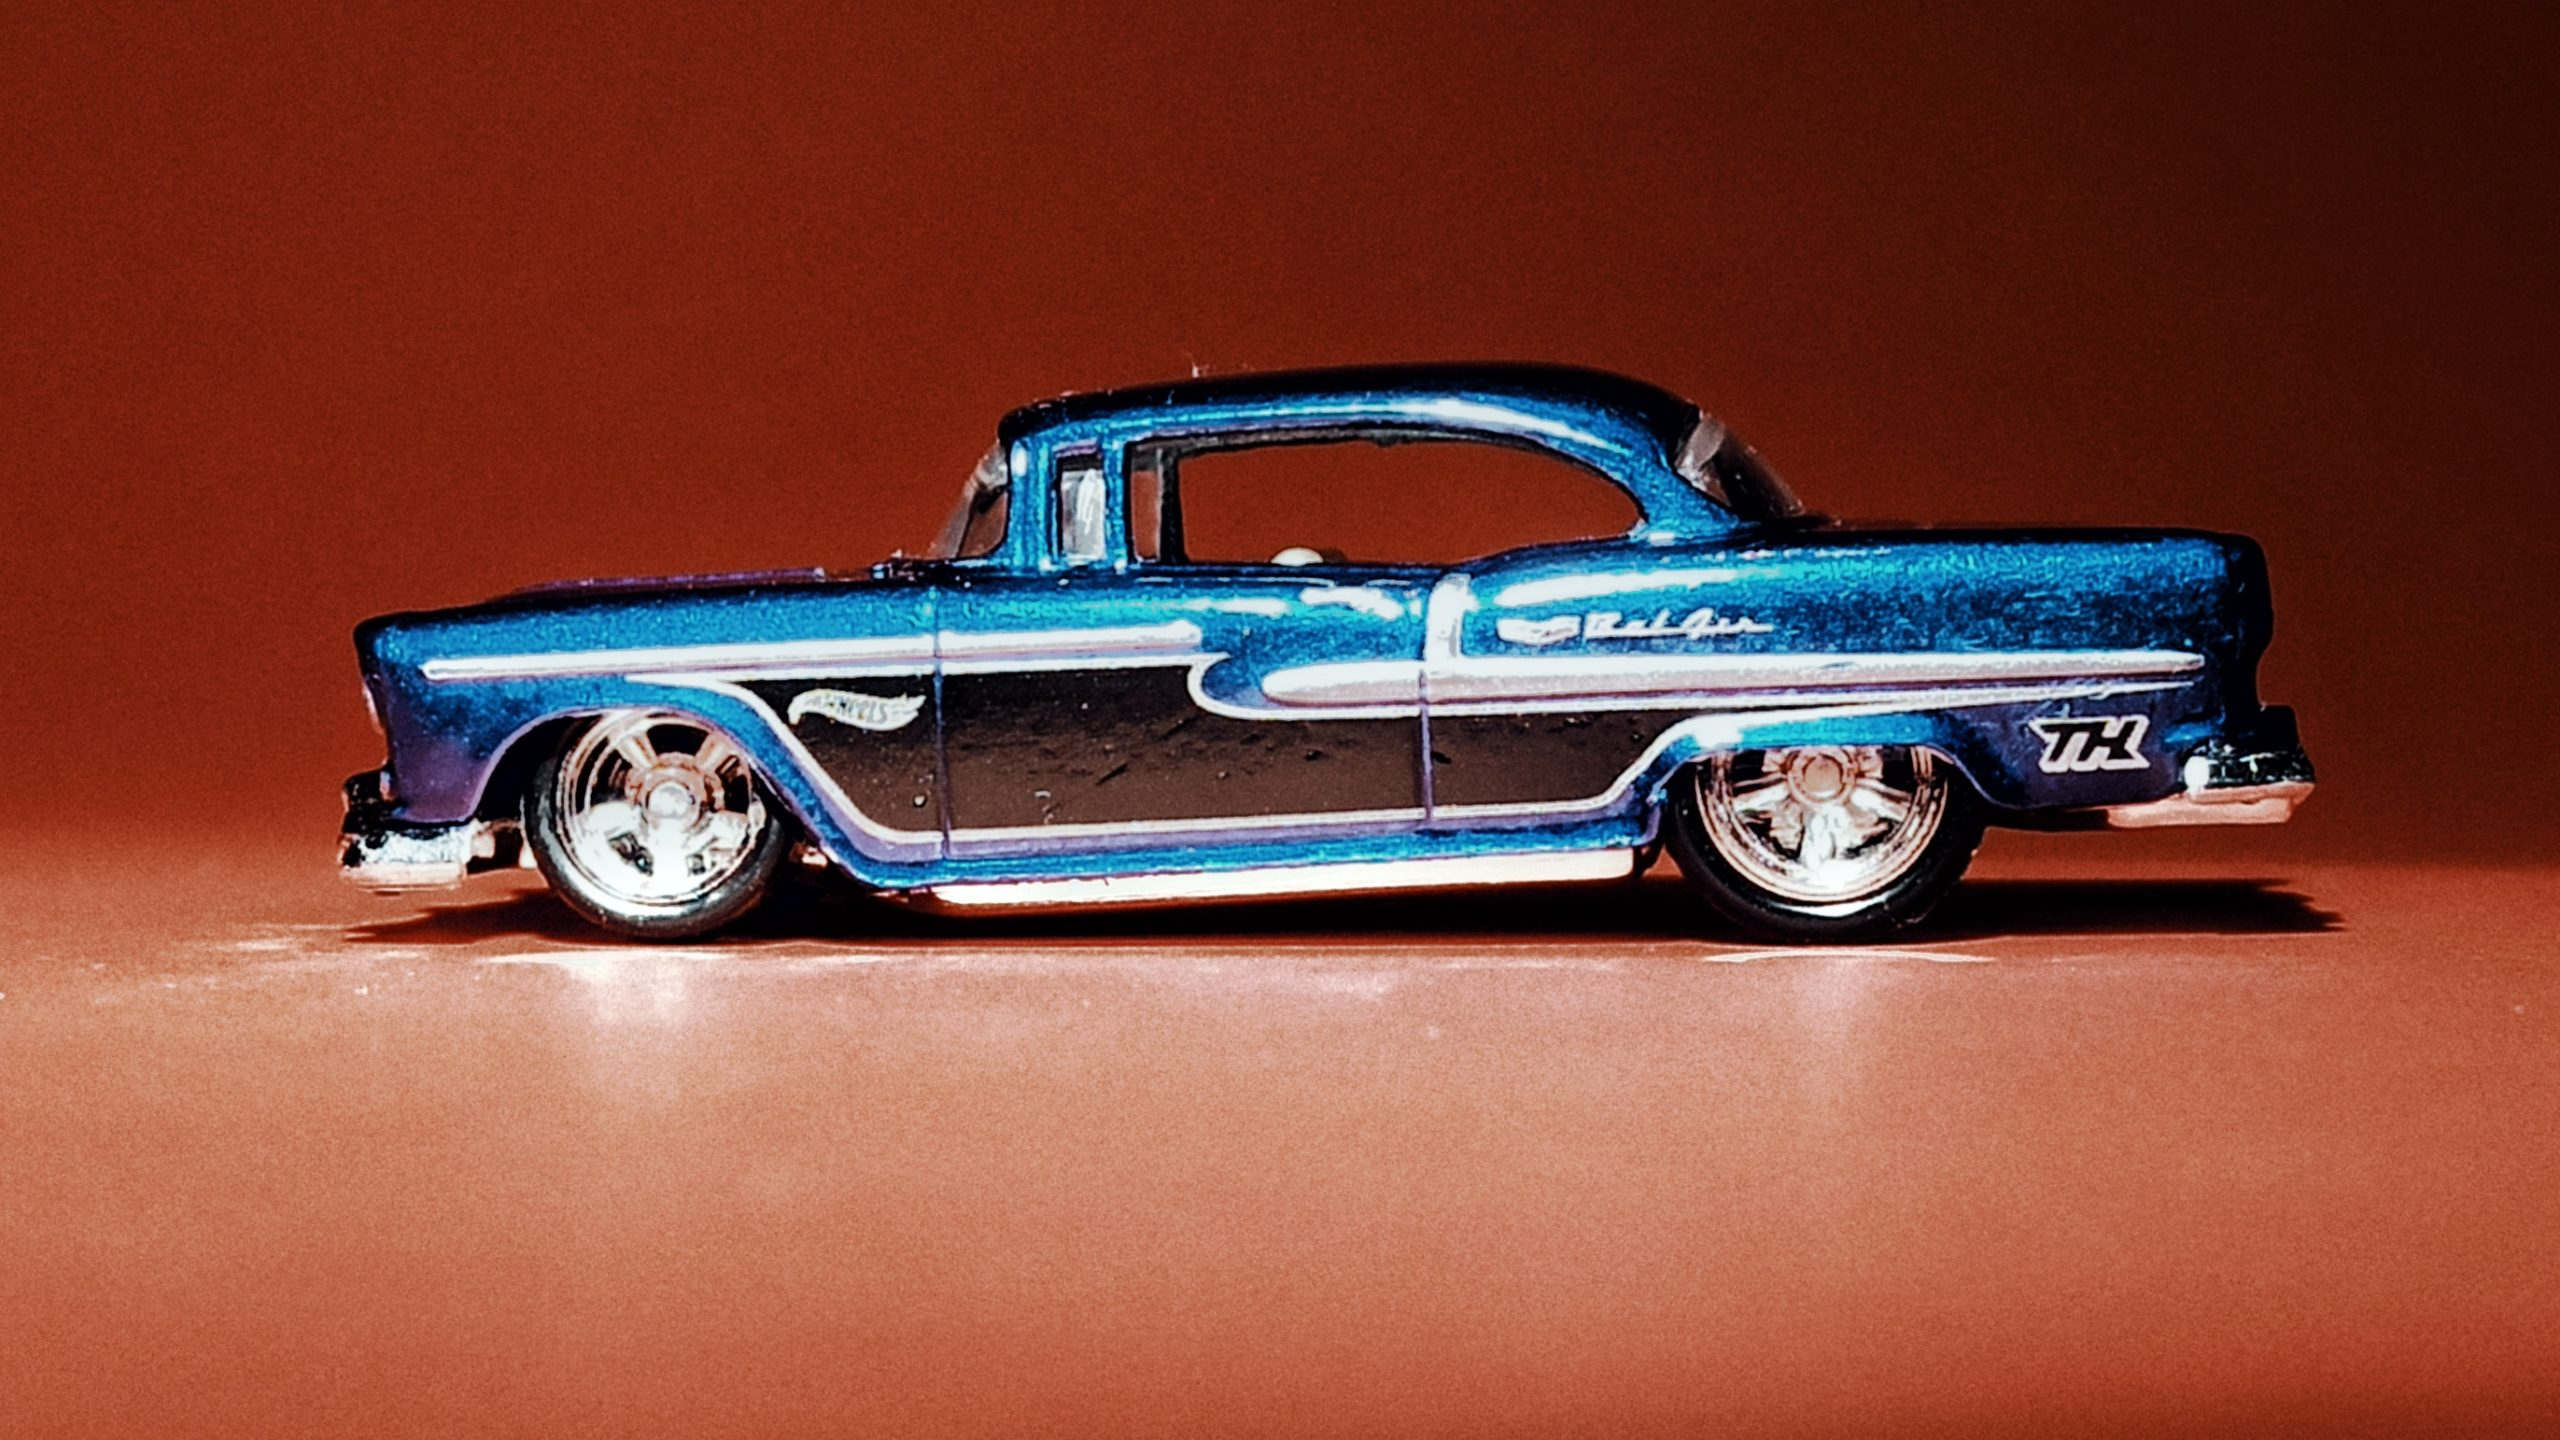 Hot Wheels '55 Chevy () 2020 (20/250) Chevy Bel Air (175) spectraflame blue Super Treasure Hunt (STH) side